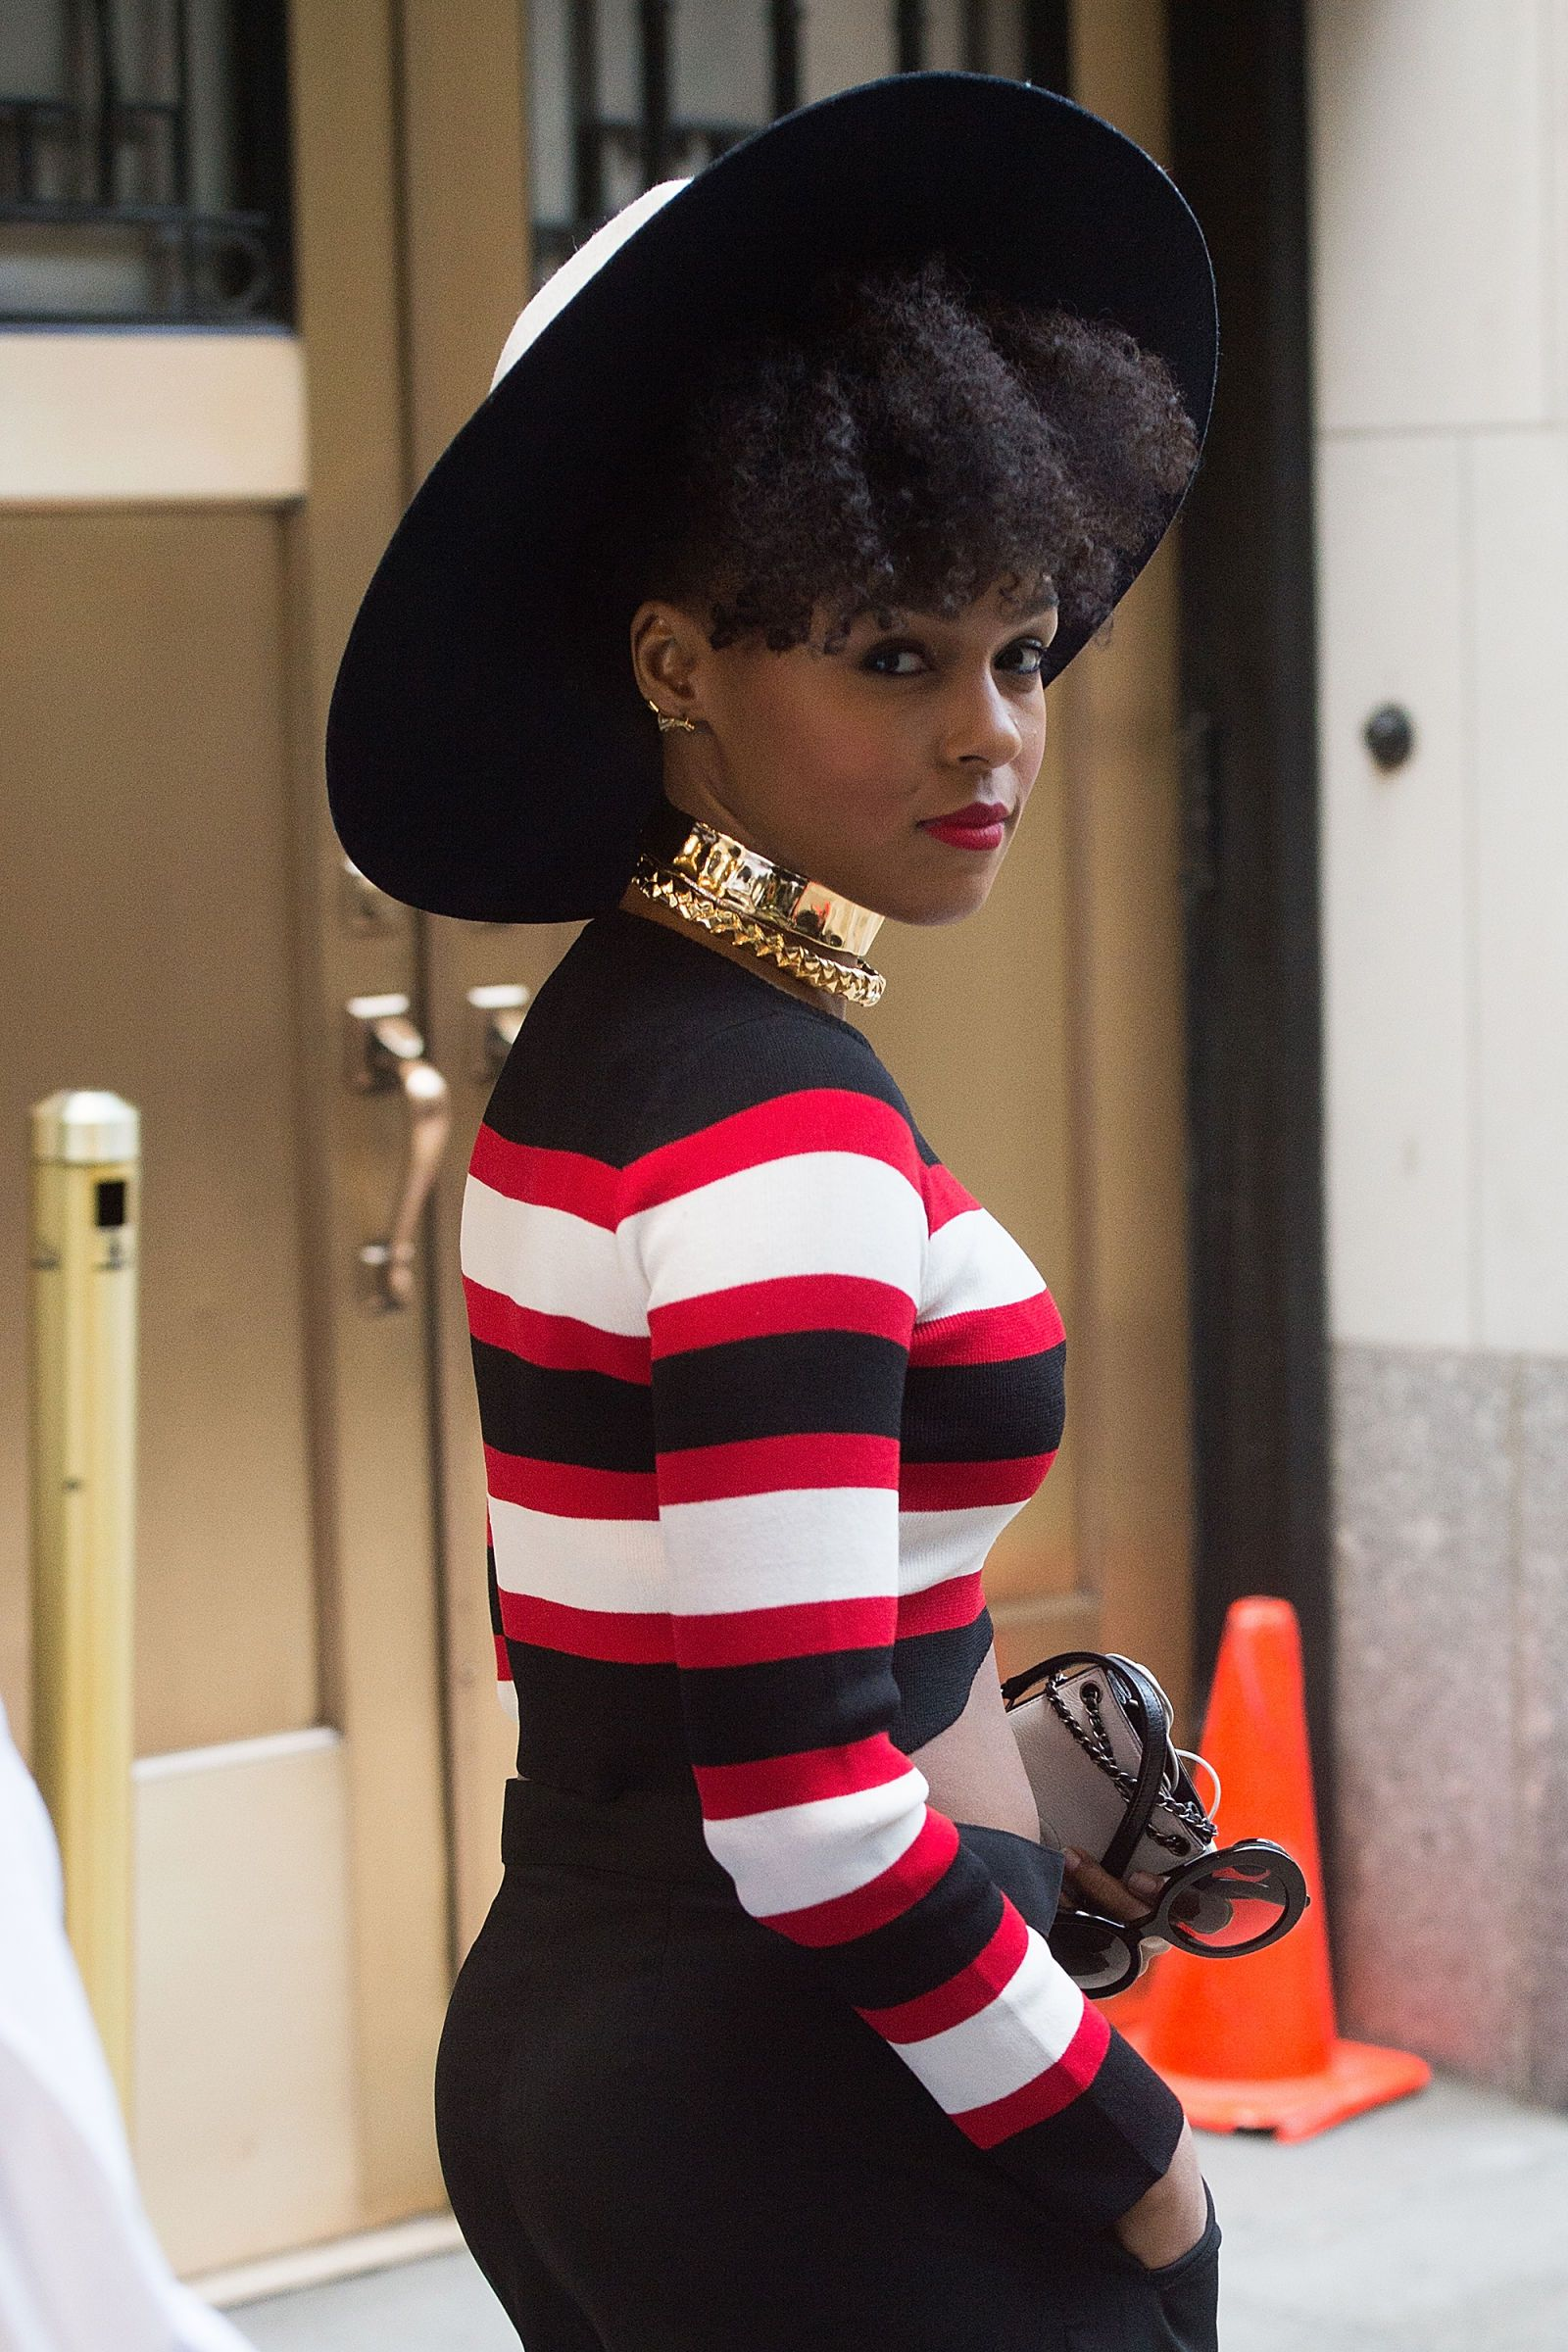 Janelle Monae Out in New York City on 5/3/2015  - ELLE.com